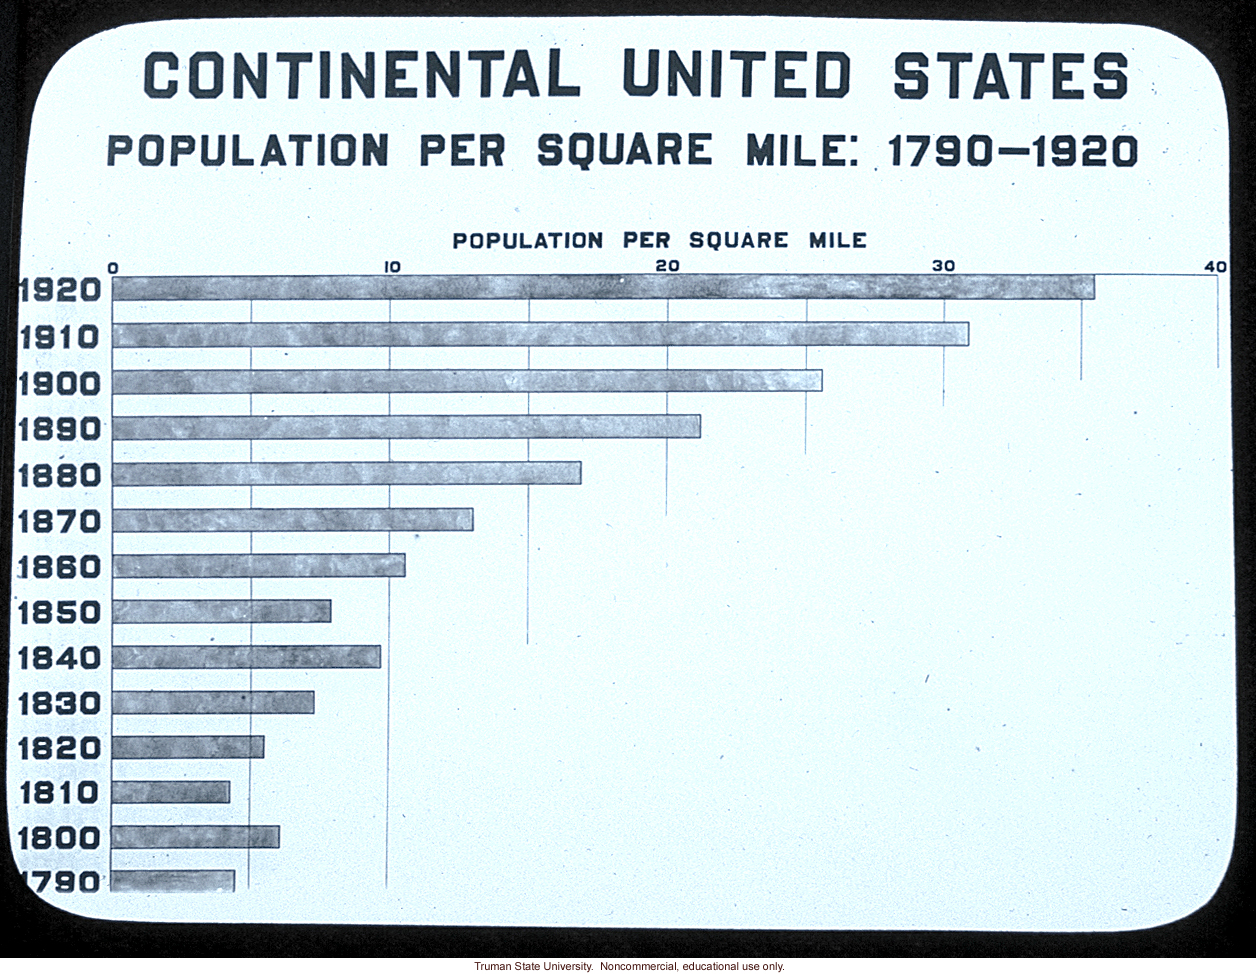 &quote;Continental United States population per square mile: 1790-1920&quote;